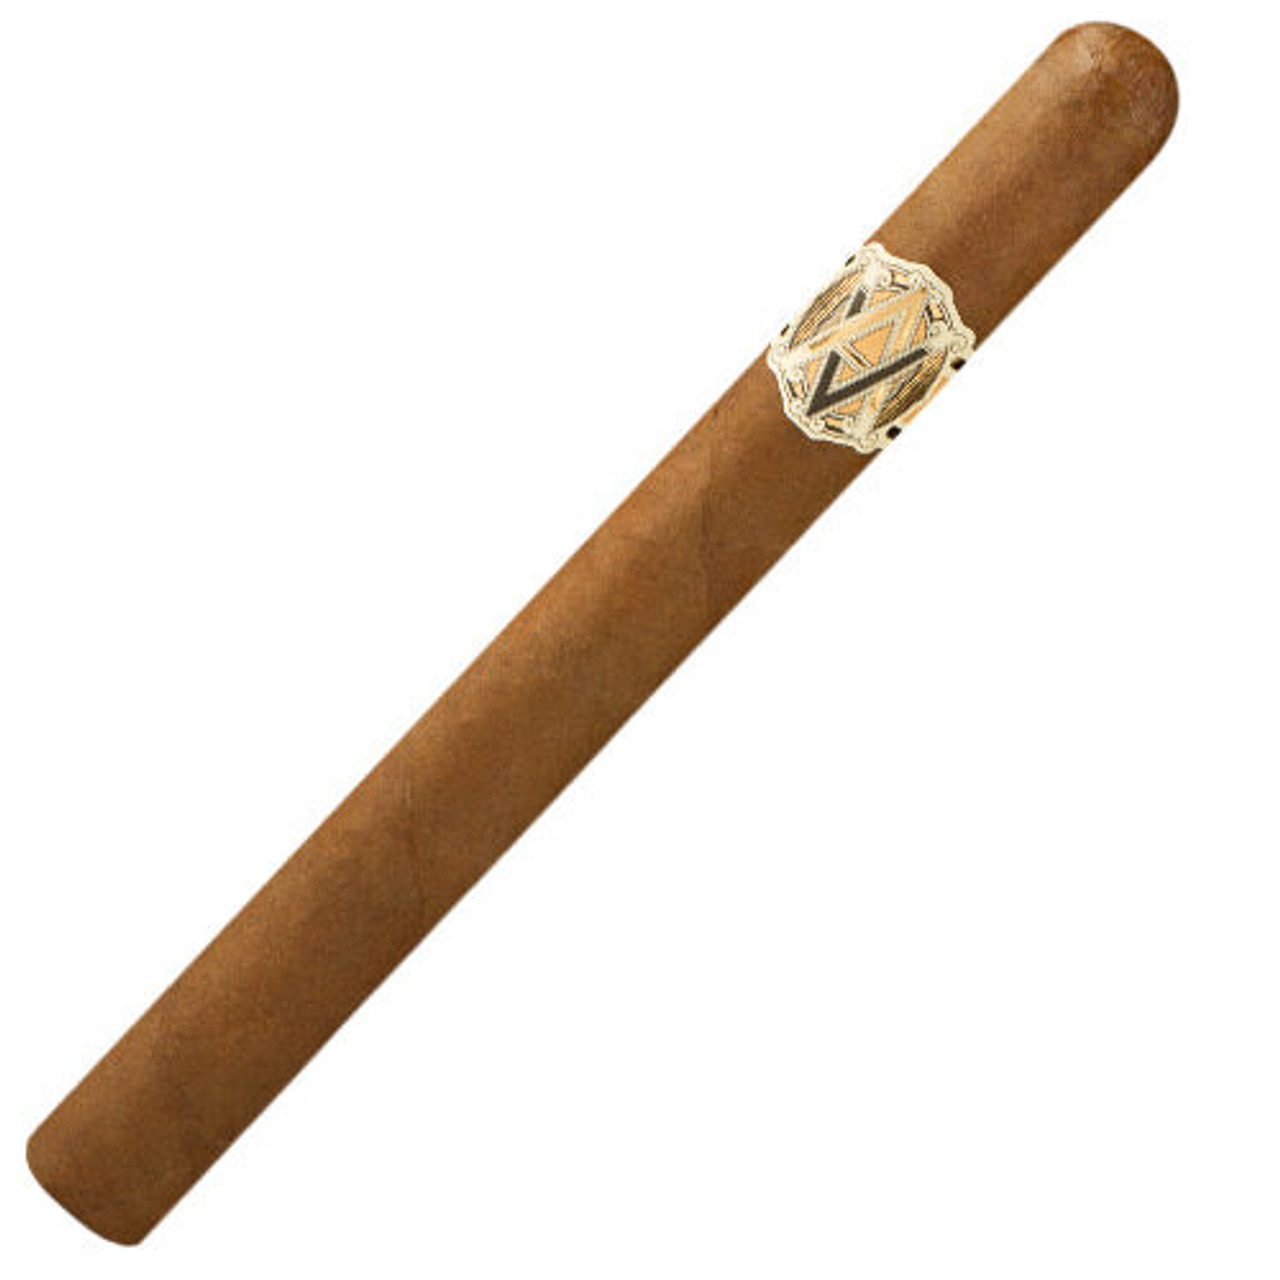 AVO Classic No. 5 Cigars - 6 7/8 X 46 (Box of 20)